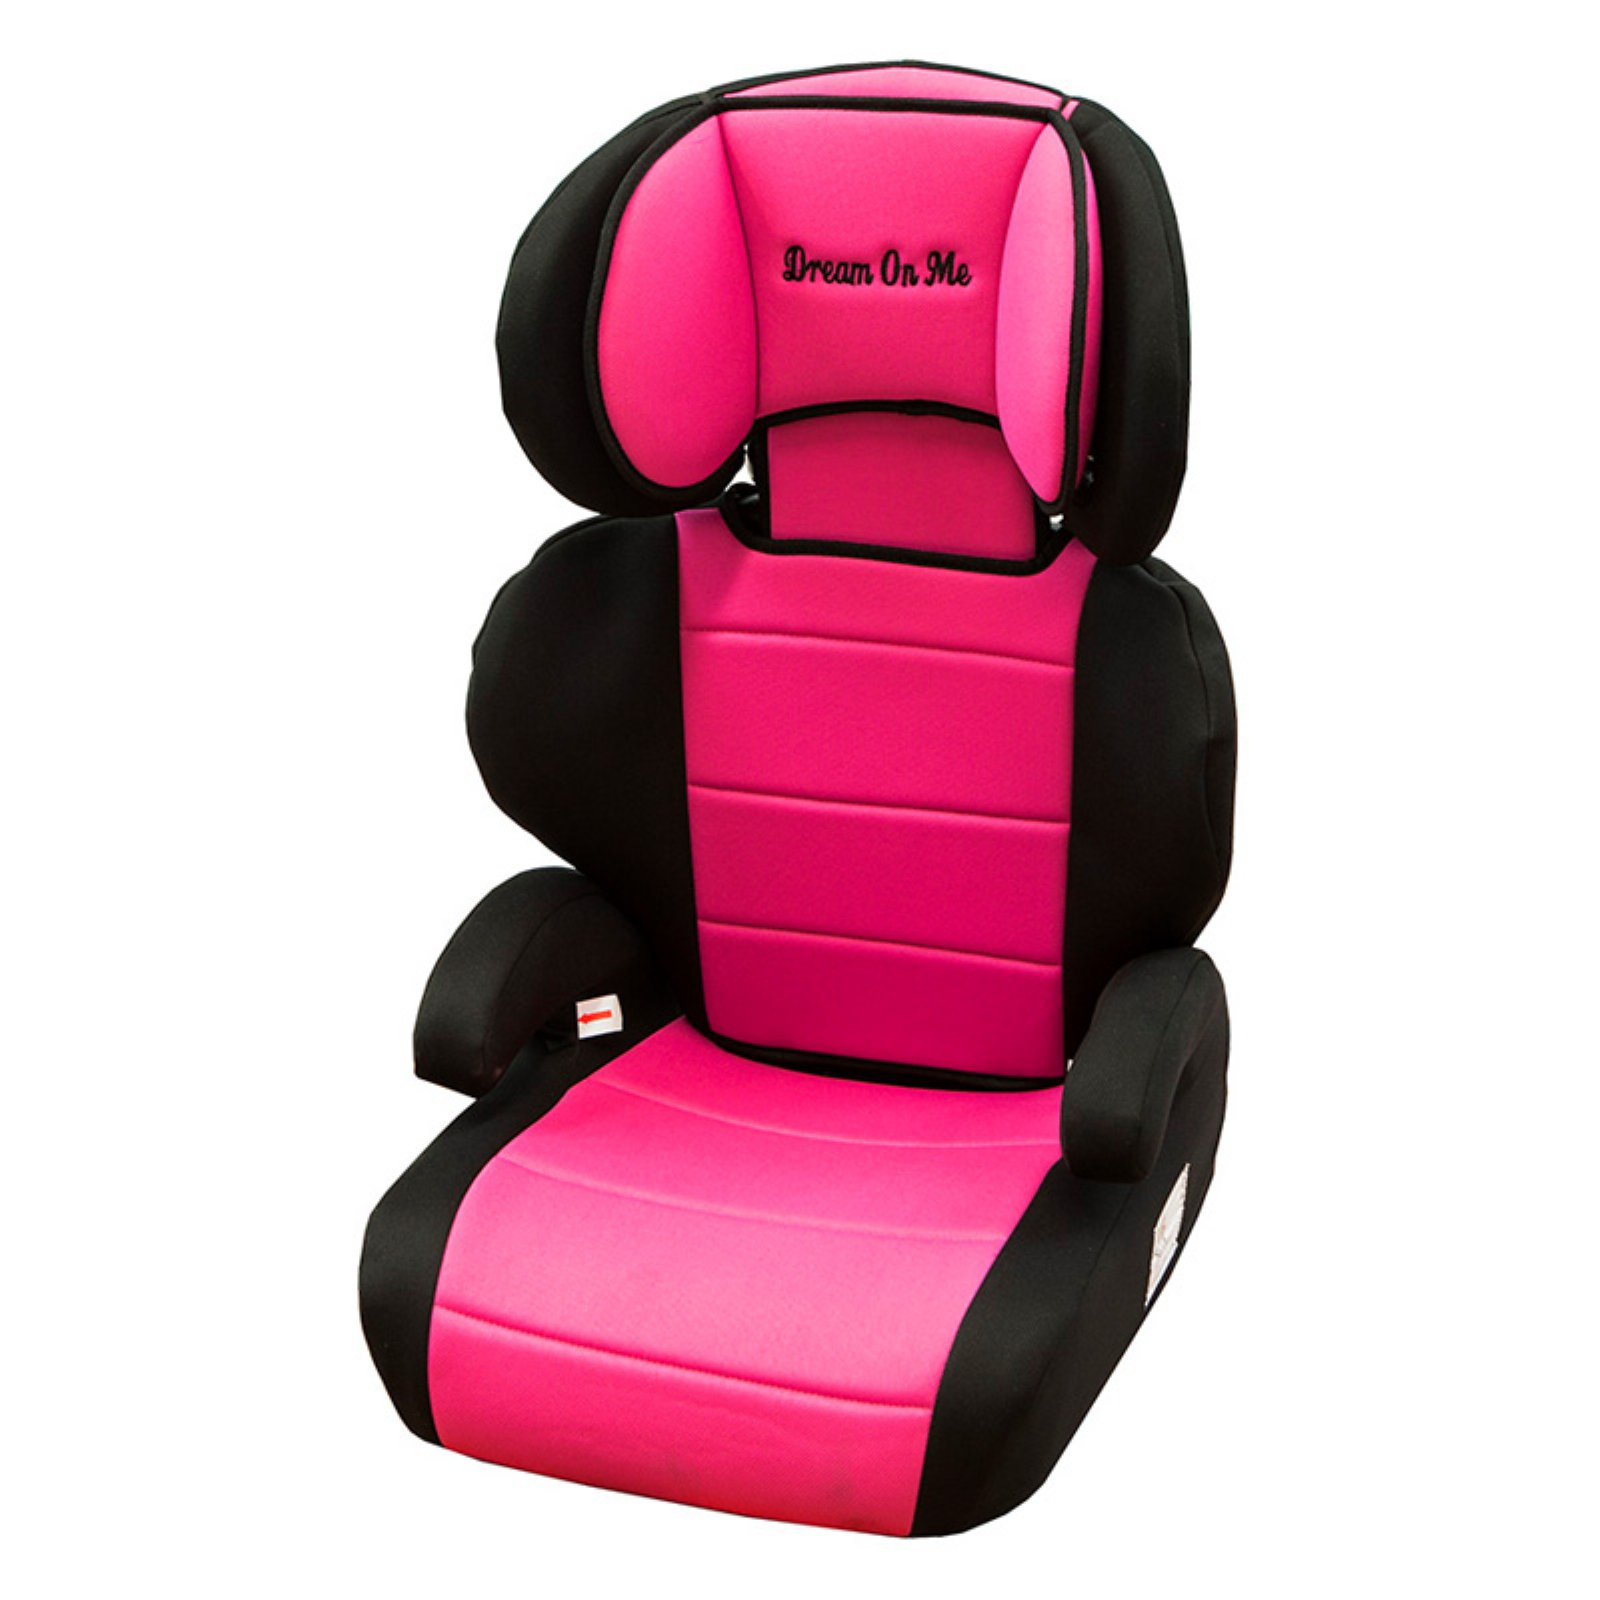 Dream On Me Deluxe High Back Booster Car Seat, Pink/Black